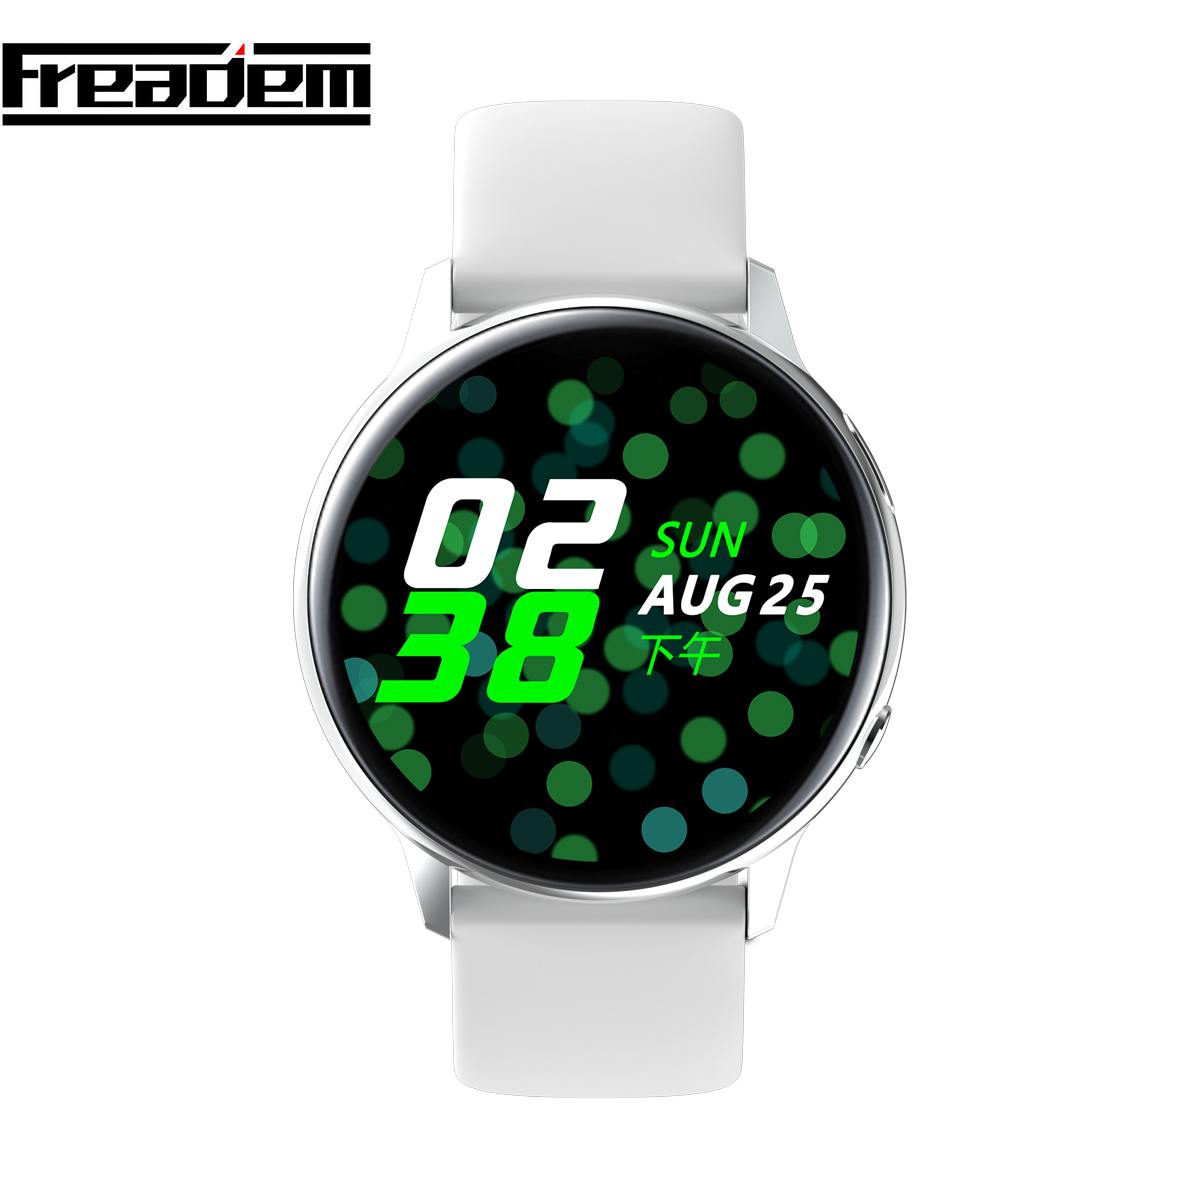 SG2 Smart Watch Men ECG+PPG Watches Wireless Charing Wearable Devices IP68 Waterproof Heart Rate Bluetooth 5.1 S20 Smartwatch